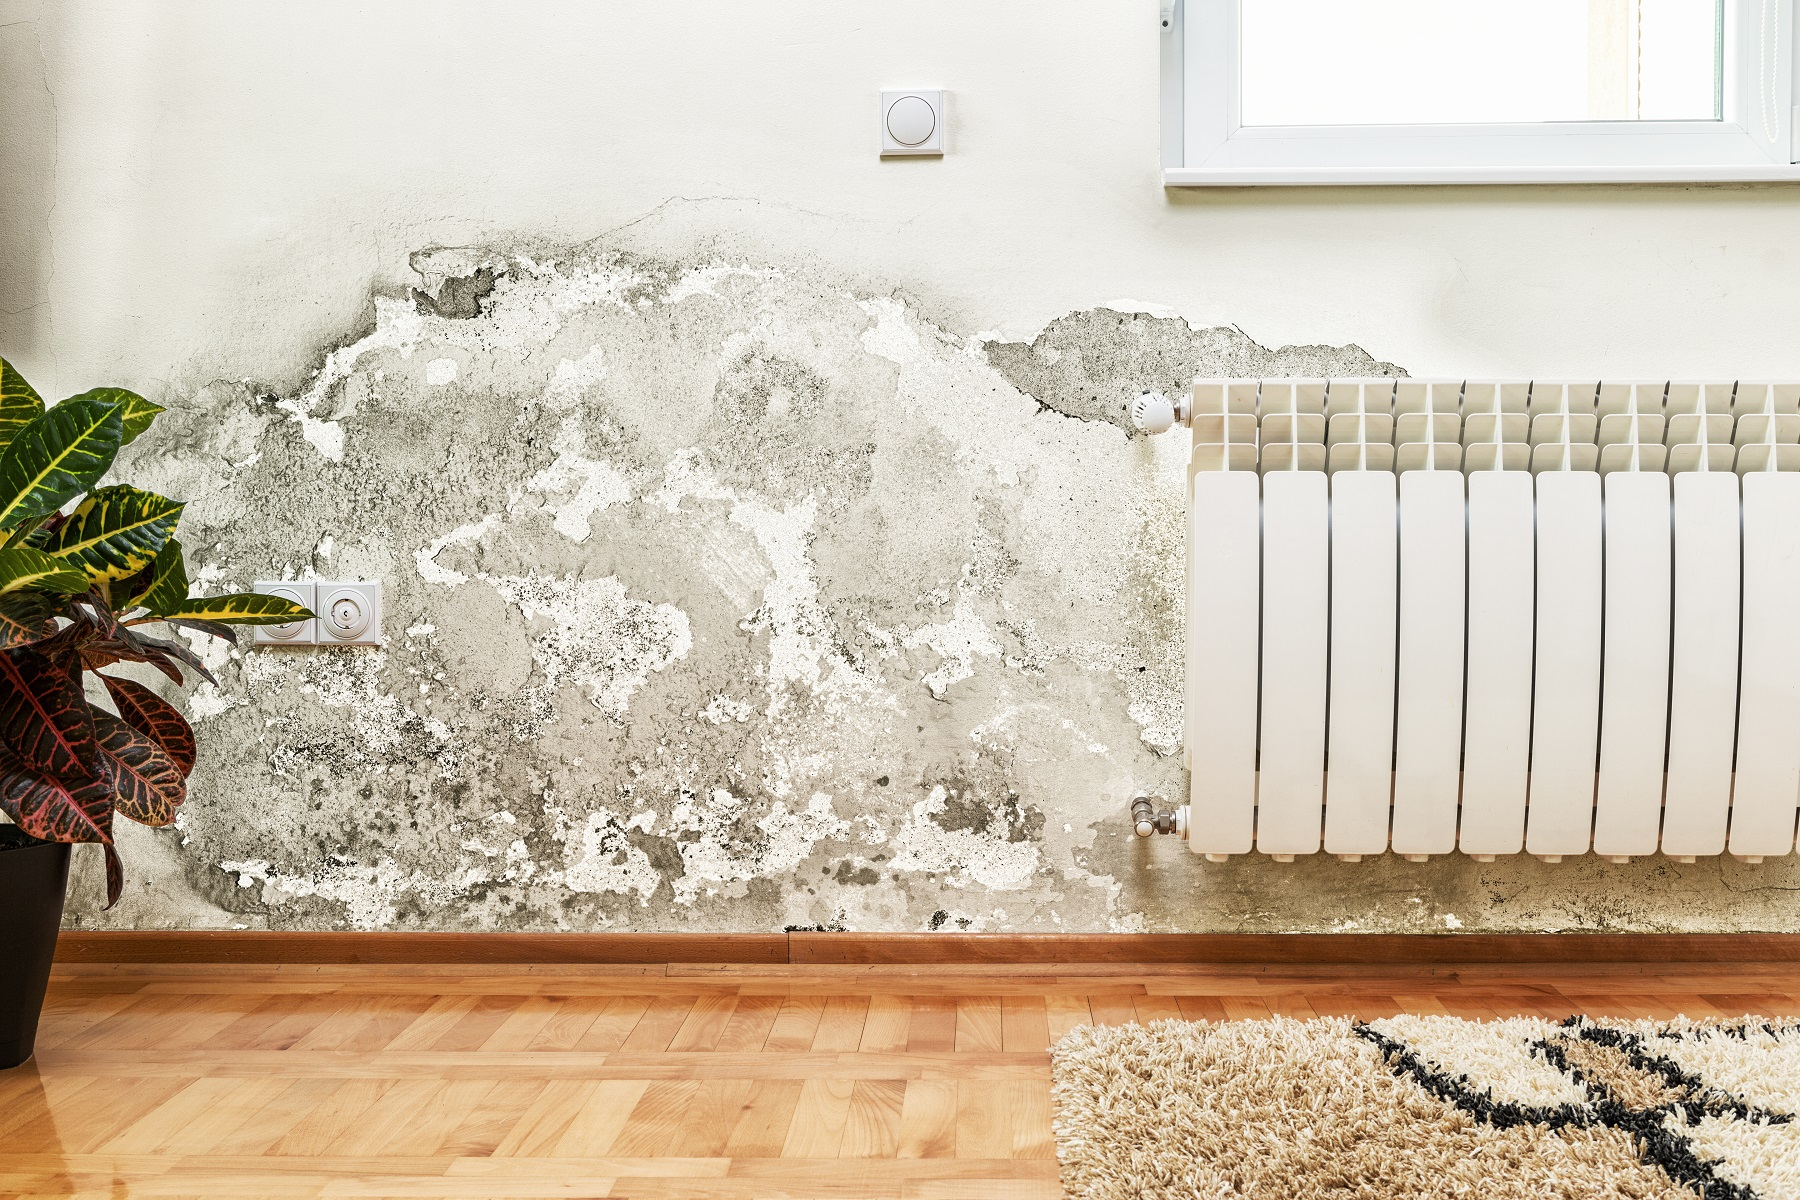 Mold Toxicity: How to Diagnose and Treat Mold Exposure For Good